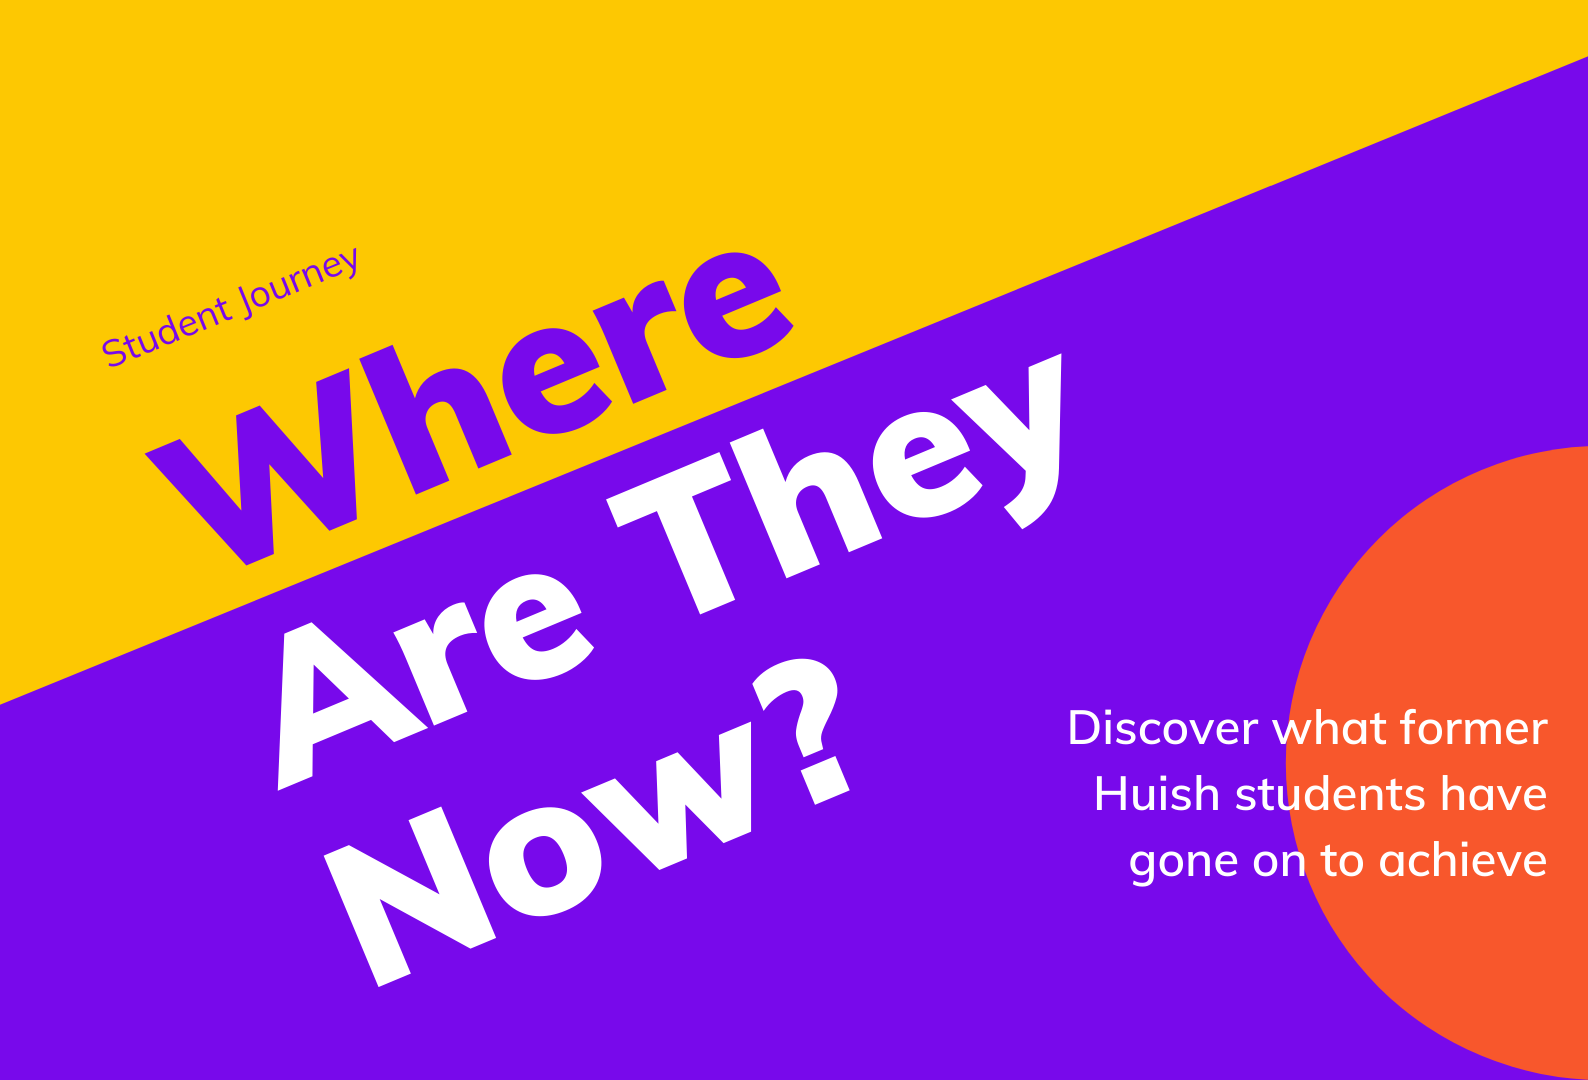 Text: Student Journey - Where are they now?